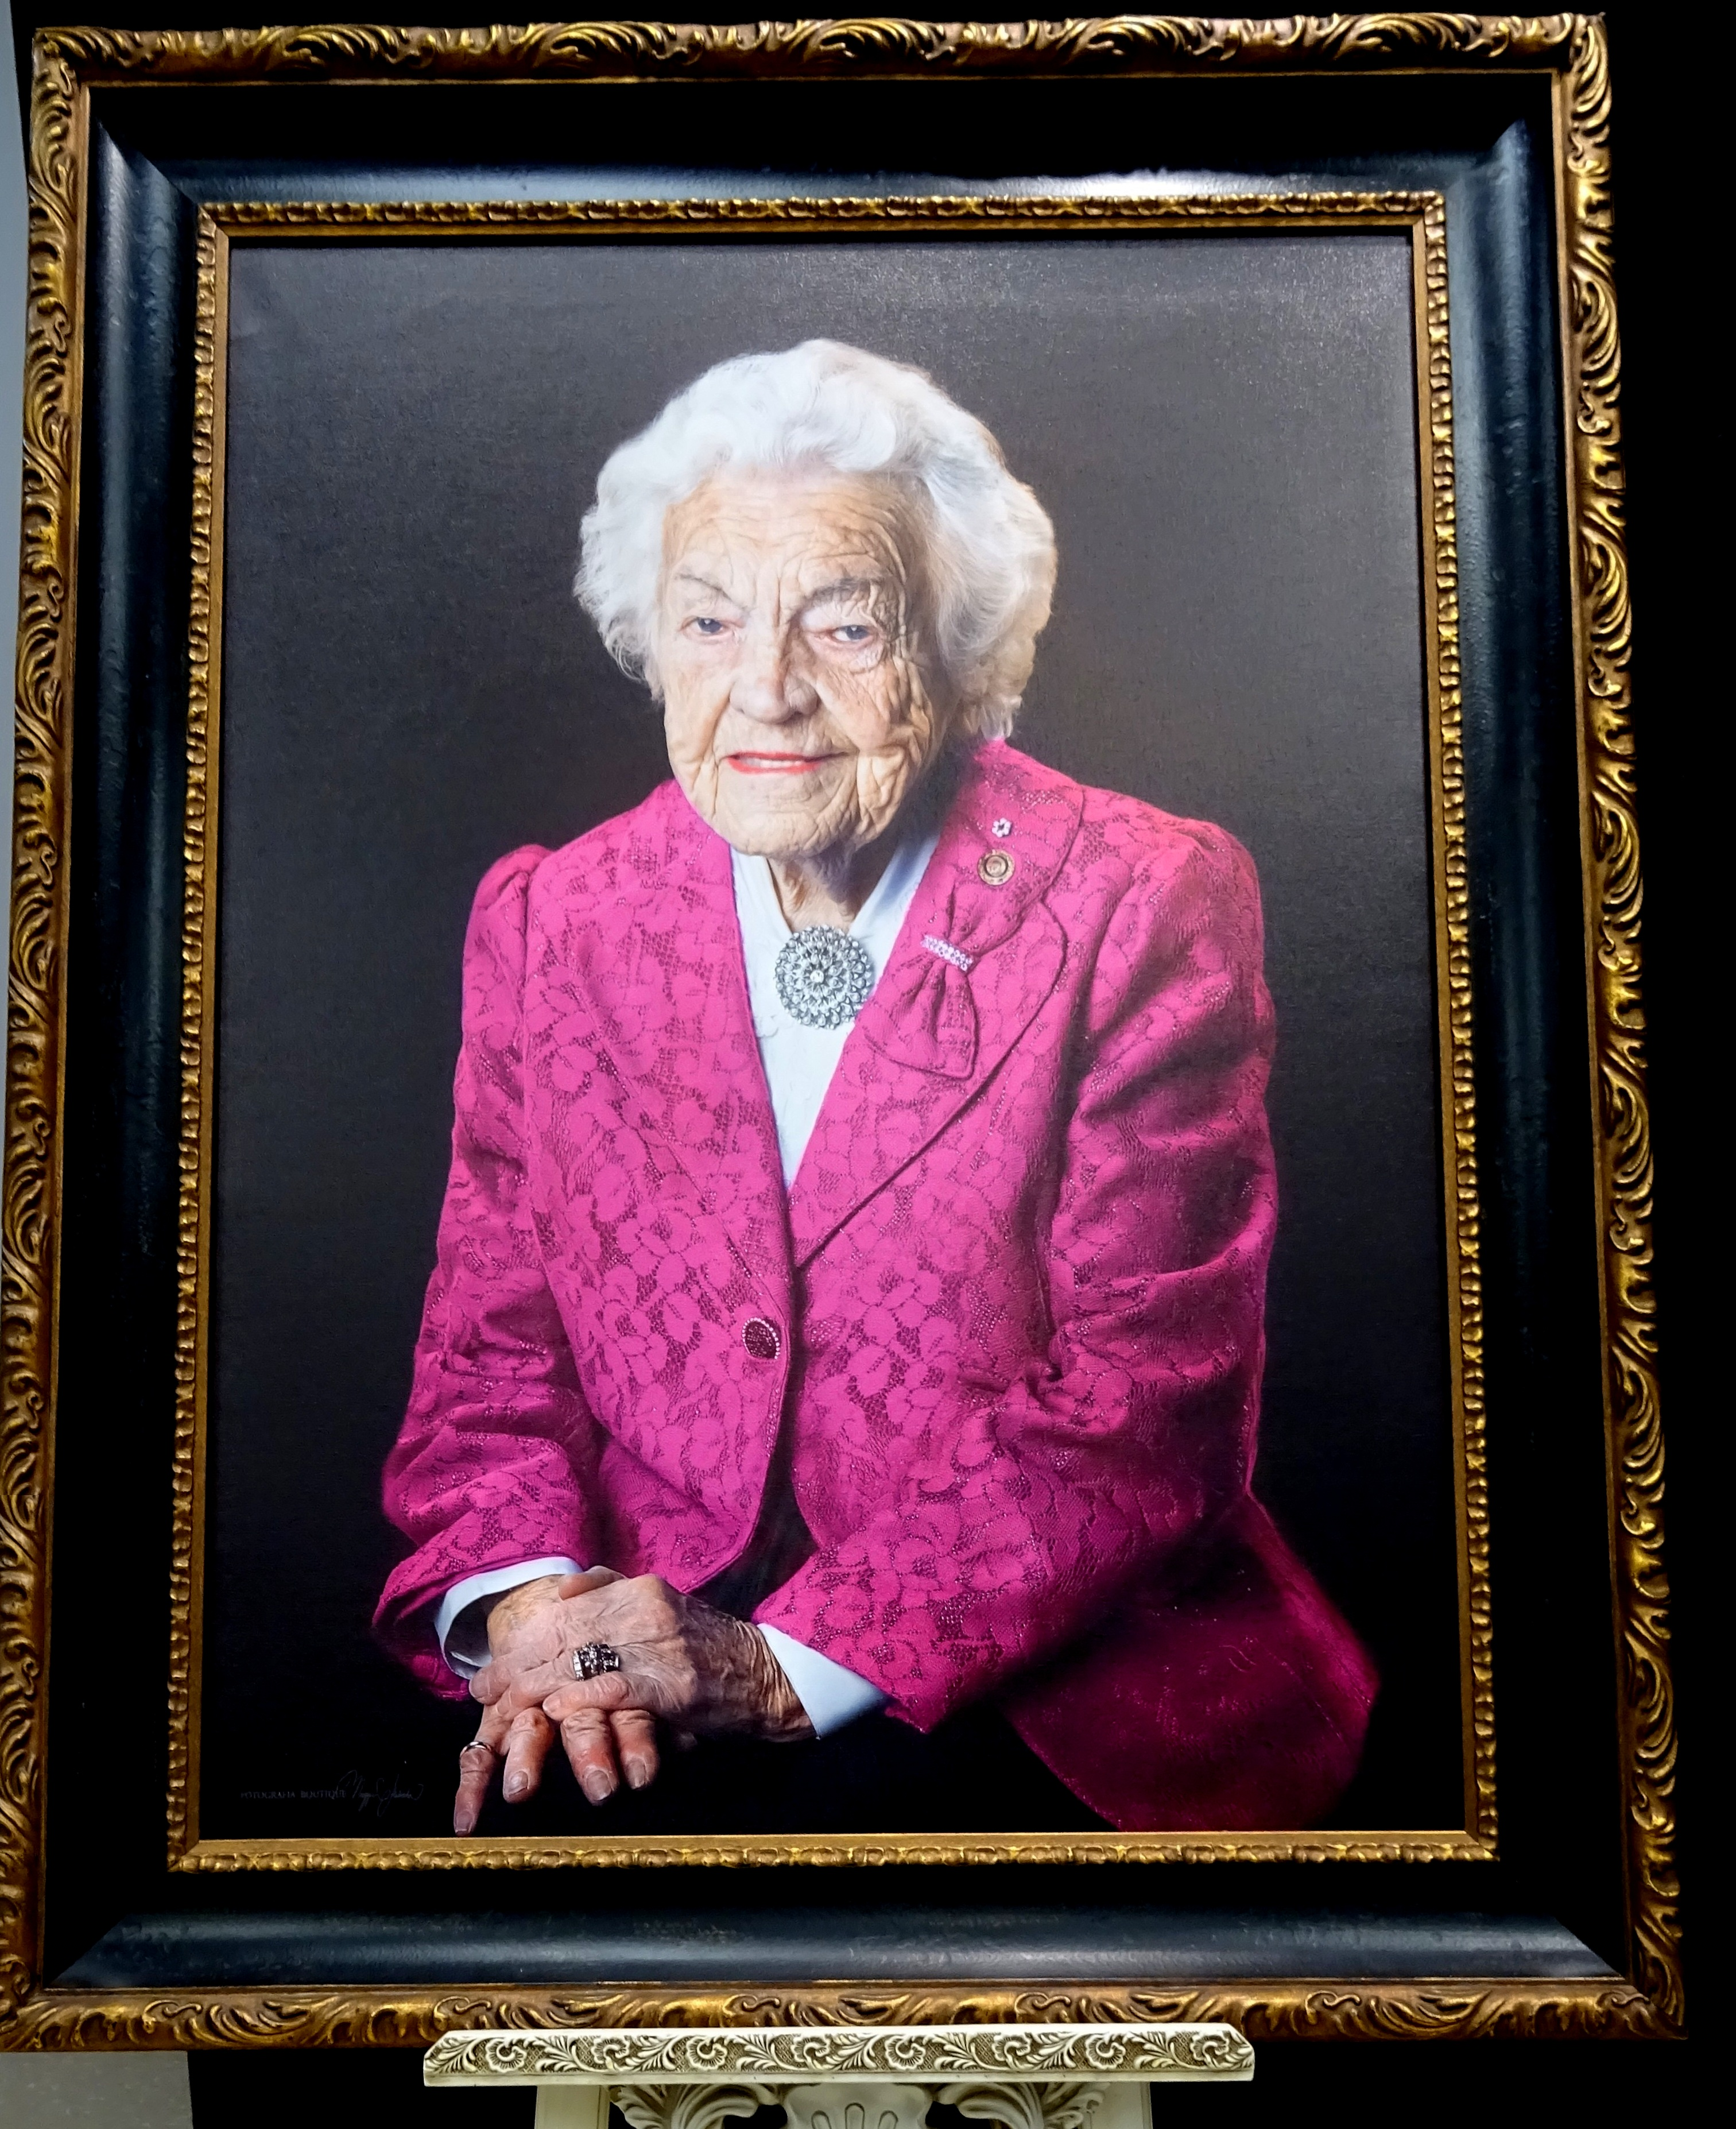 Portrait of Hazel McCallion in Pink by Maggie Habieda of Fotografia Boutique, on display at Hazel McCallion Hall, Vic Johnston C.C. 14 Feb 2017